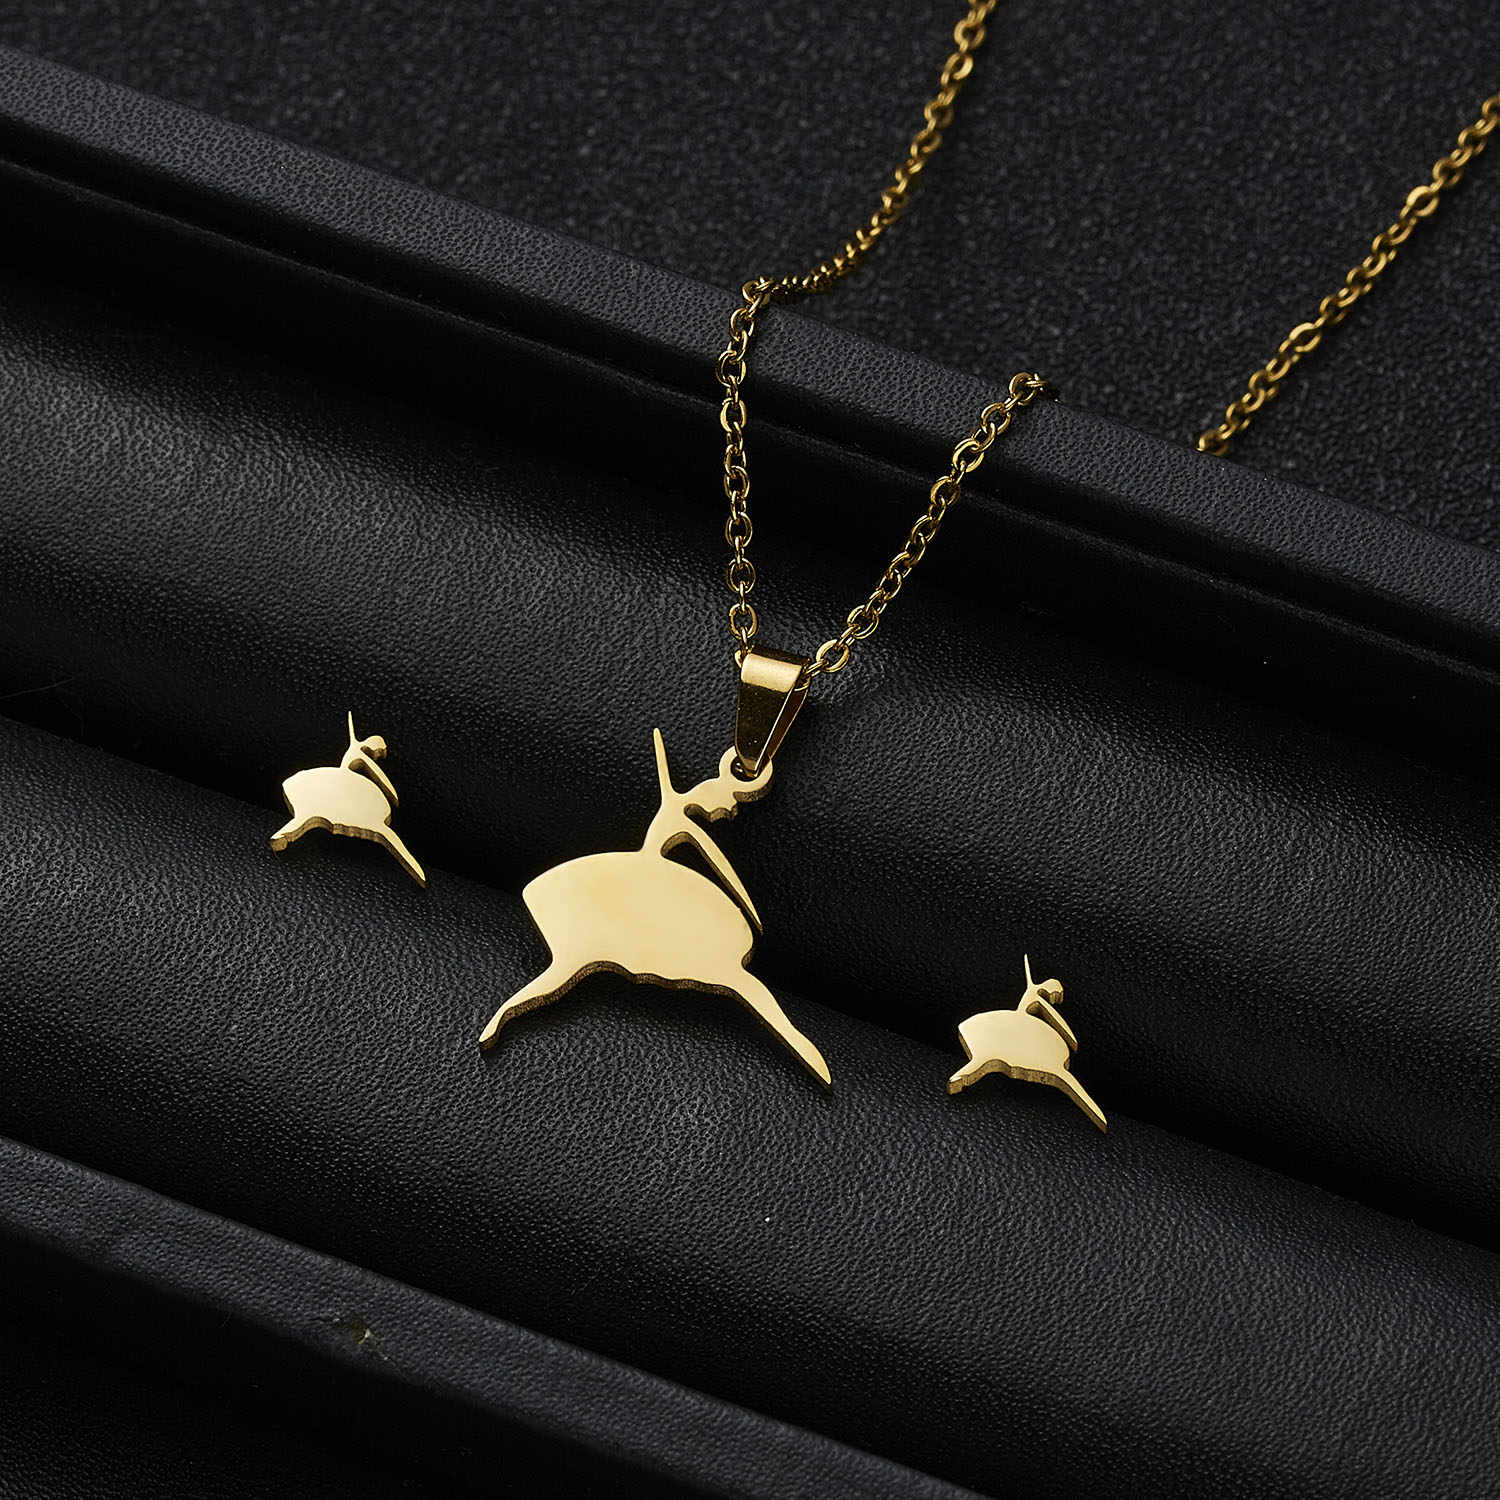 2019 New Jewelry Gift Fashion Dancing Girl Heart Cat Paw Angel Stainless Steel Pendant Necklace Earrings for Women Jewelry Sets